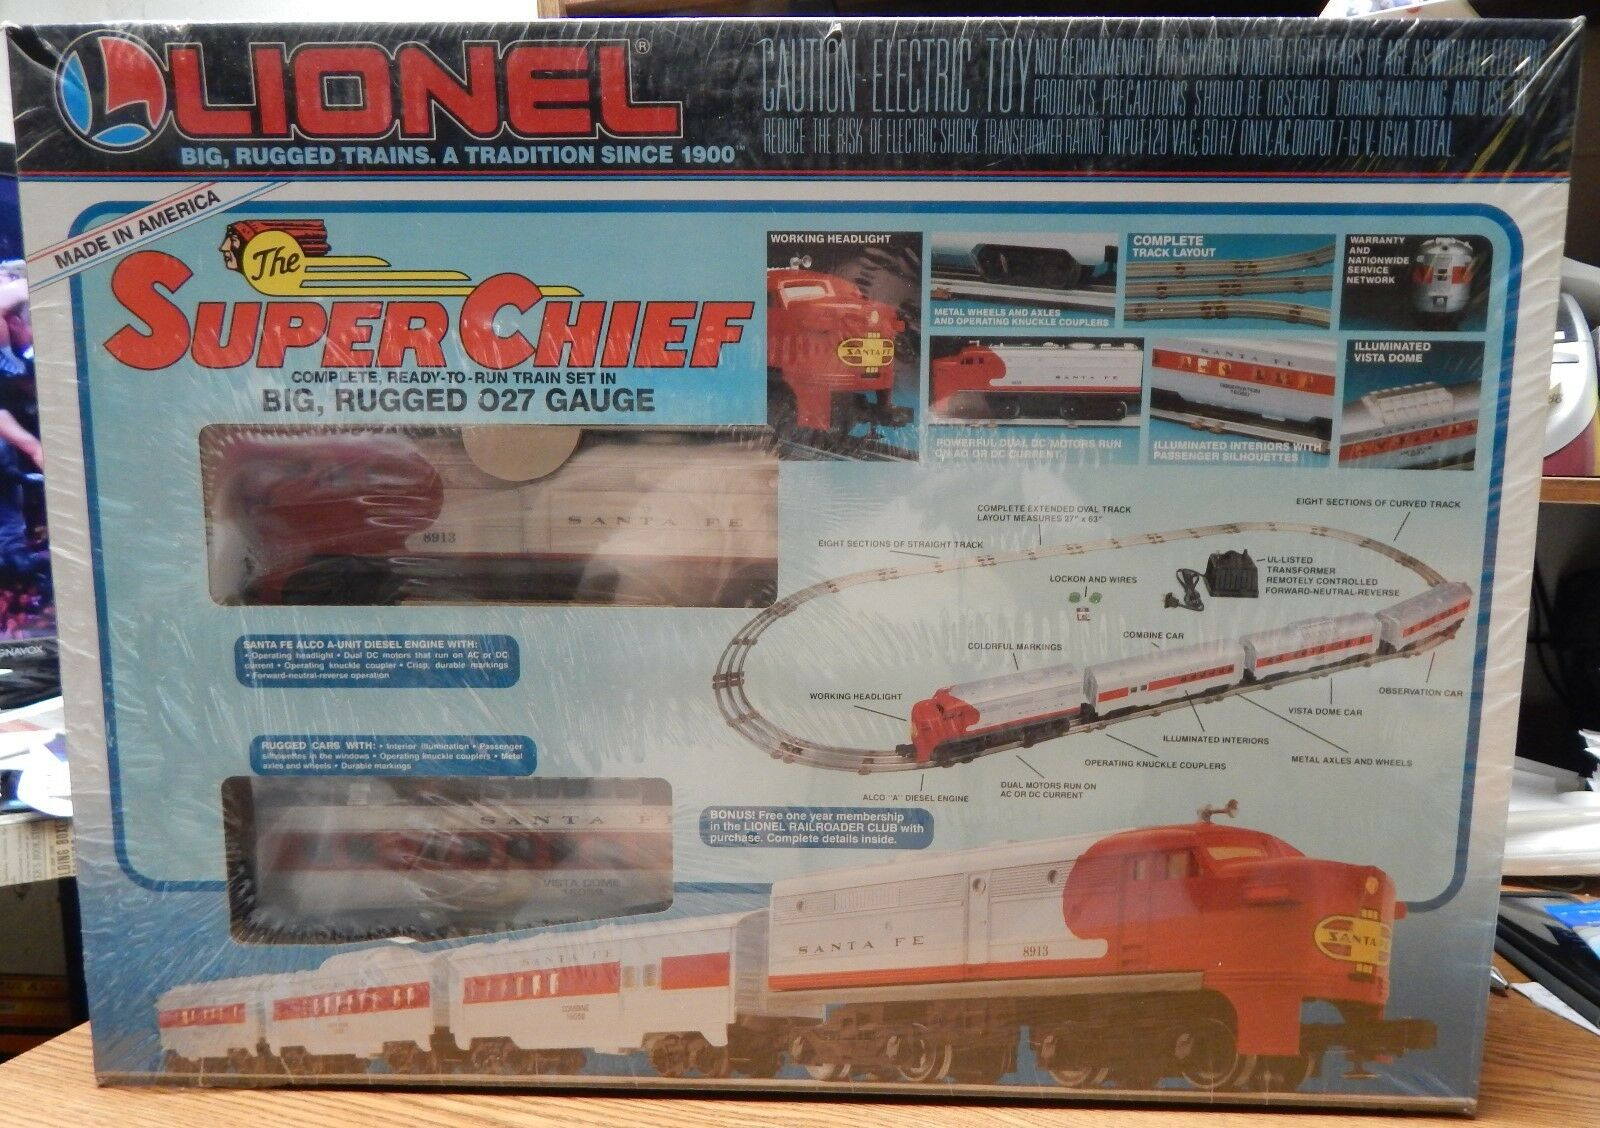 LIONEL 6-11739 THE SUPER CHEIF TRAIN SET NEW SEALED IN BOX O27 SCALE  LQQK